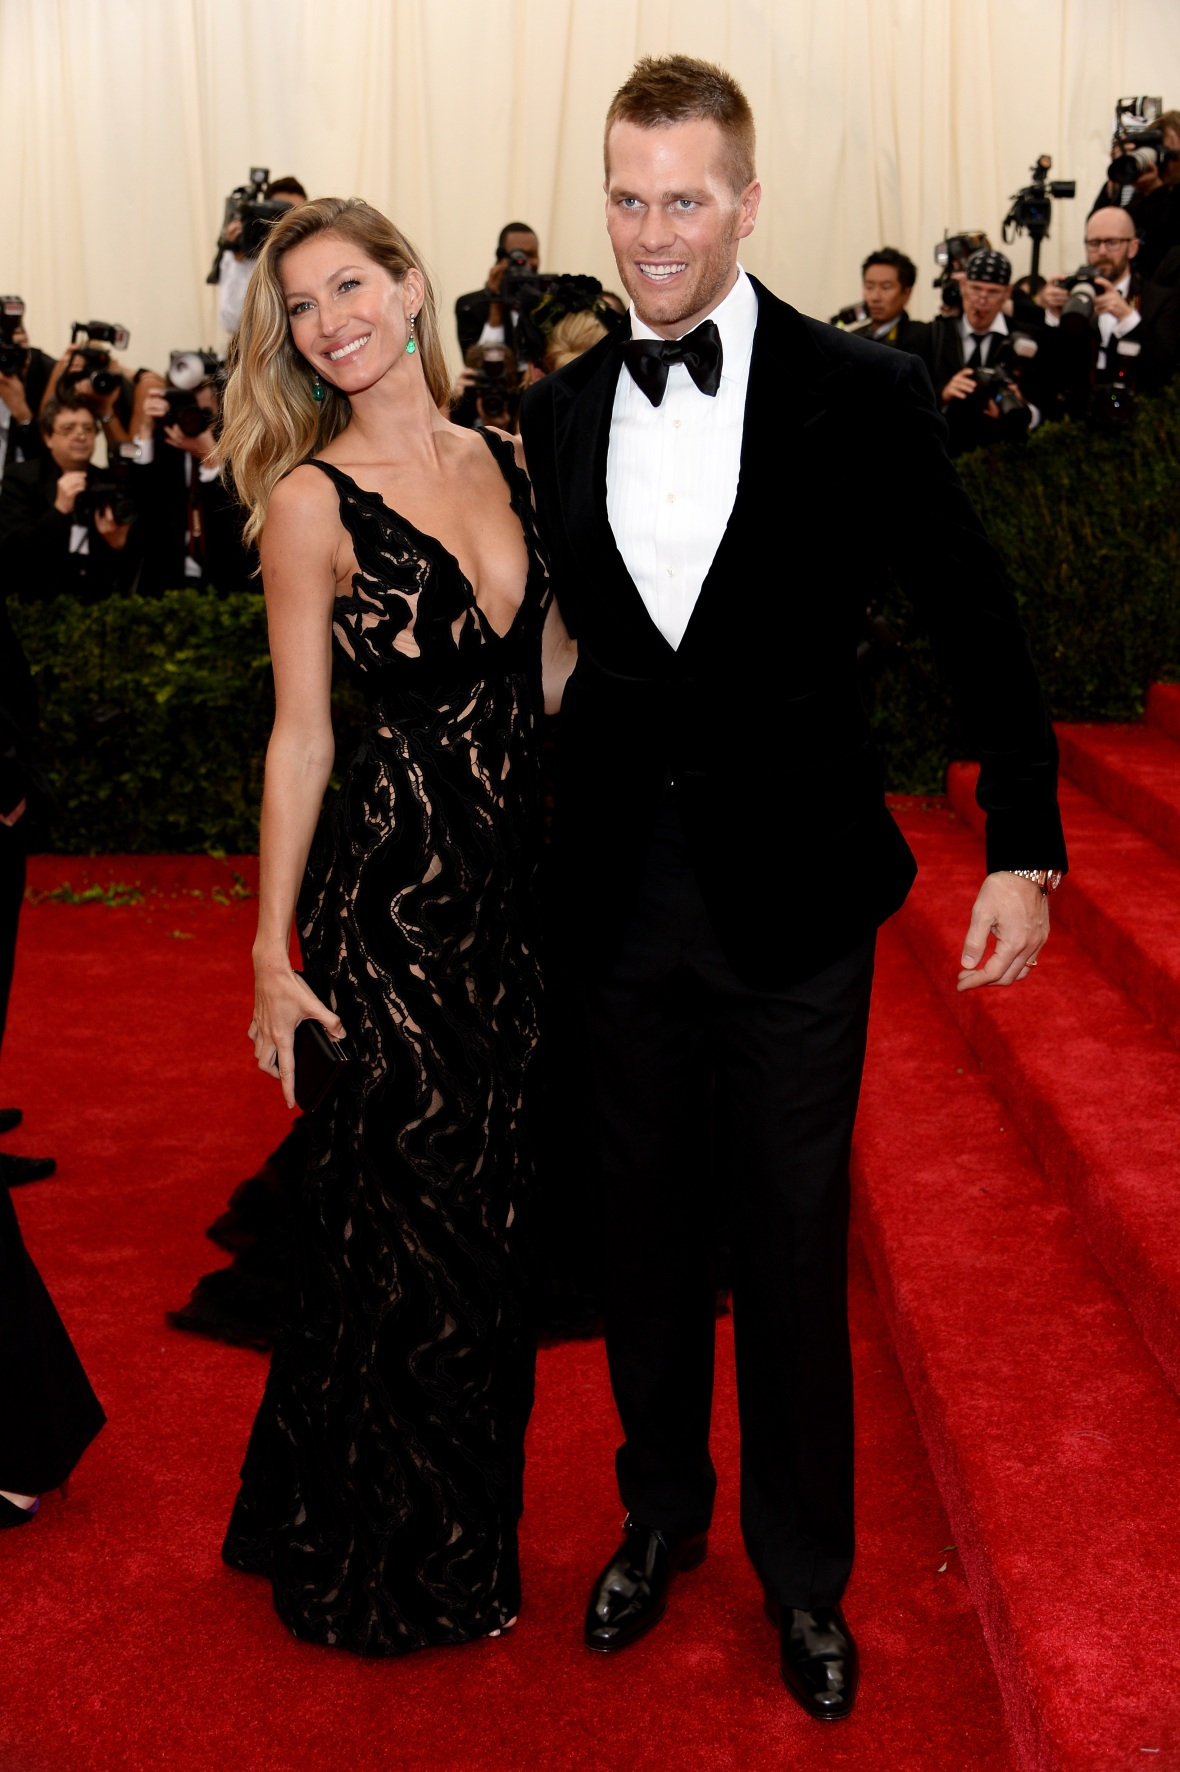 tom brady and gisele bundchen-getty images